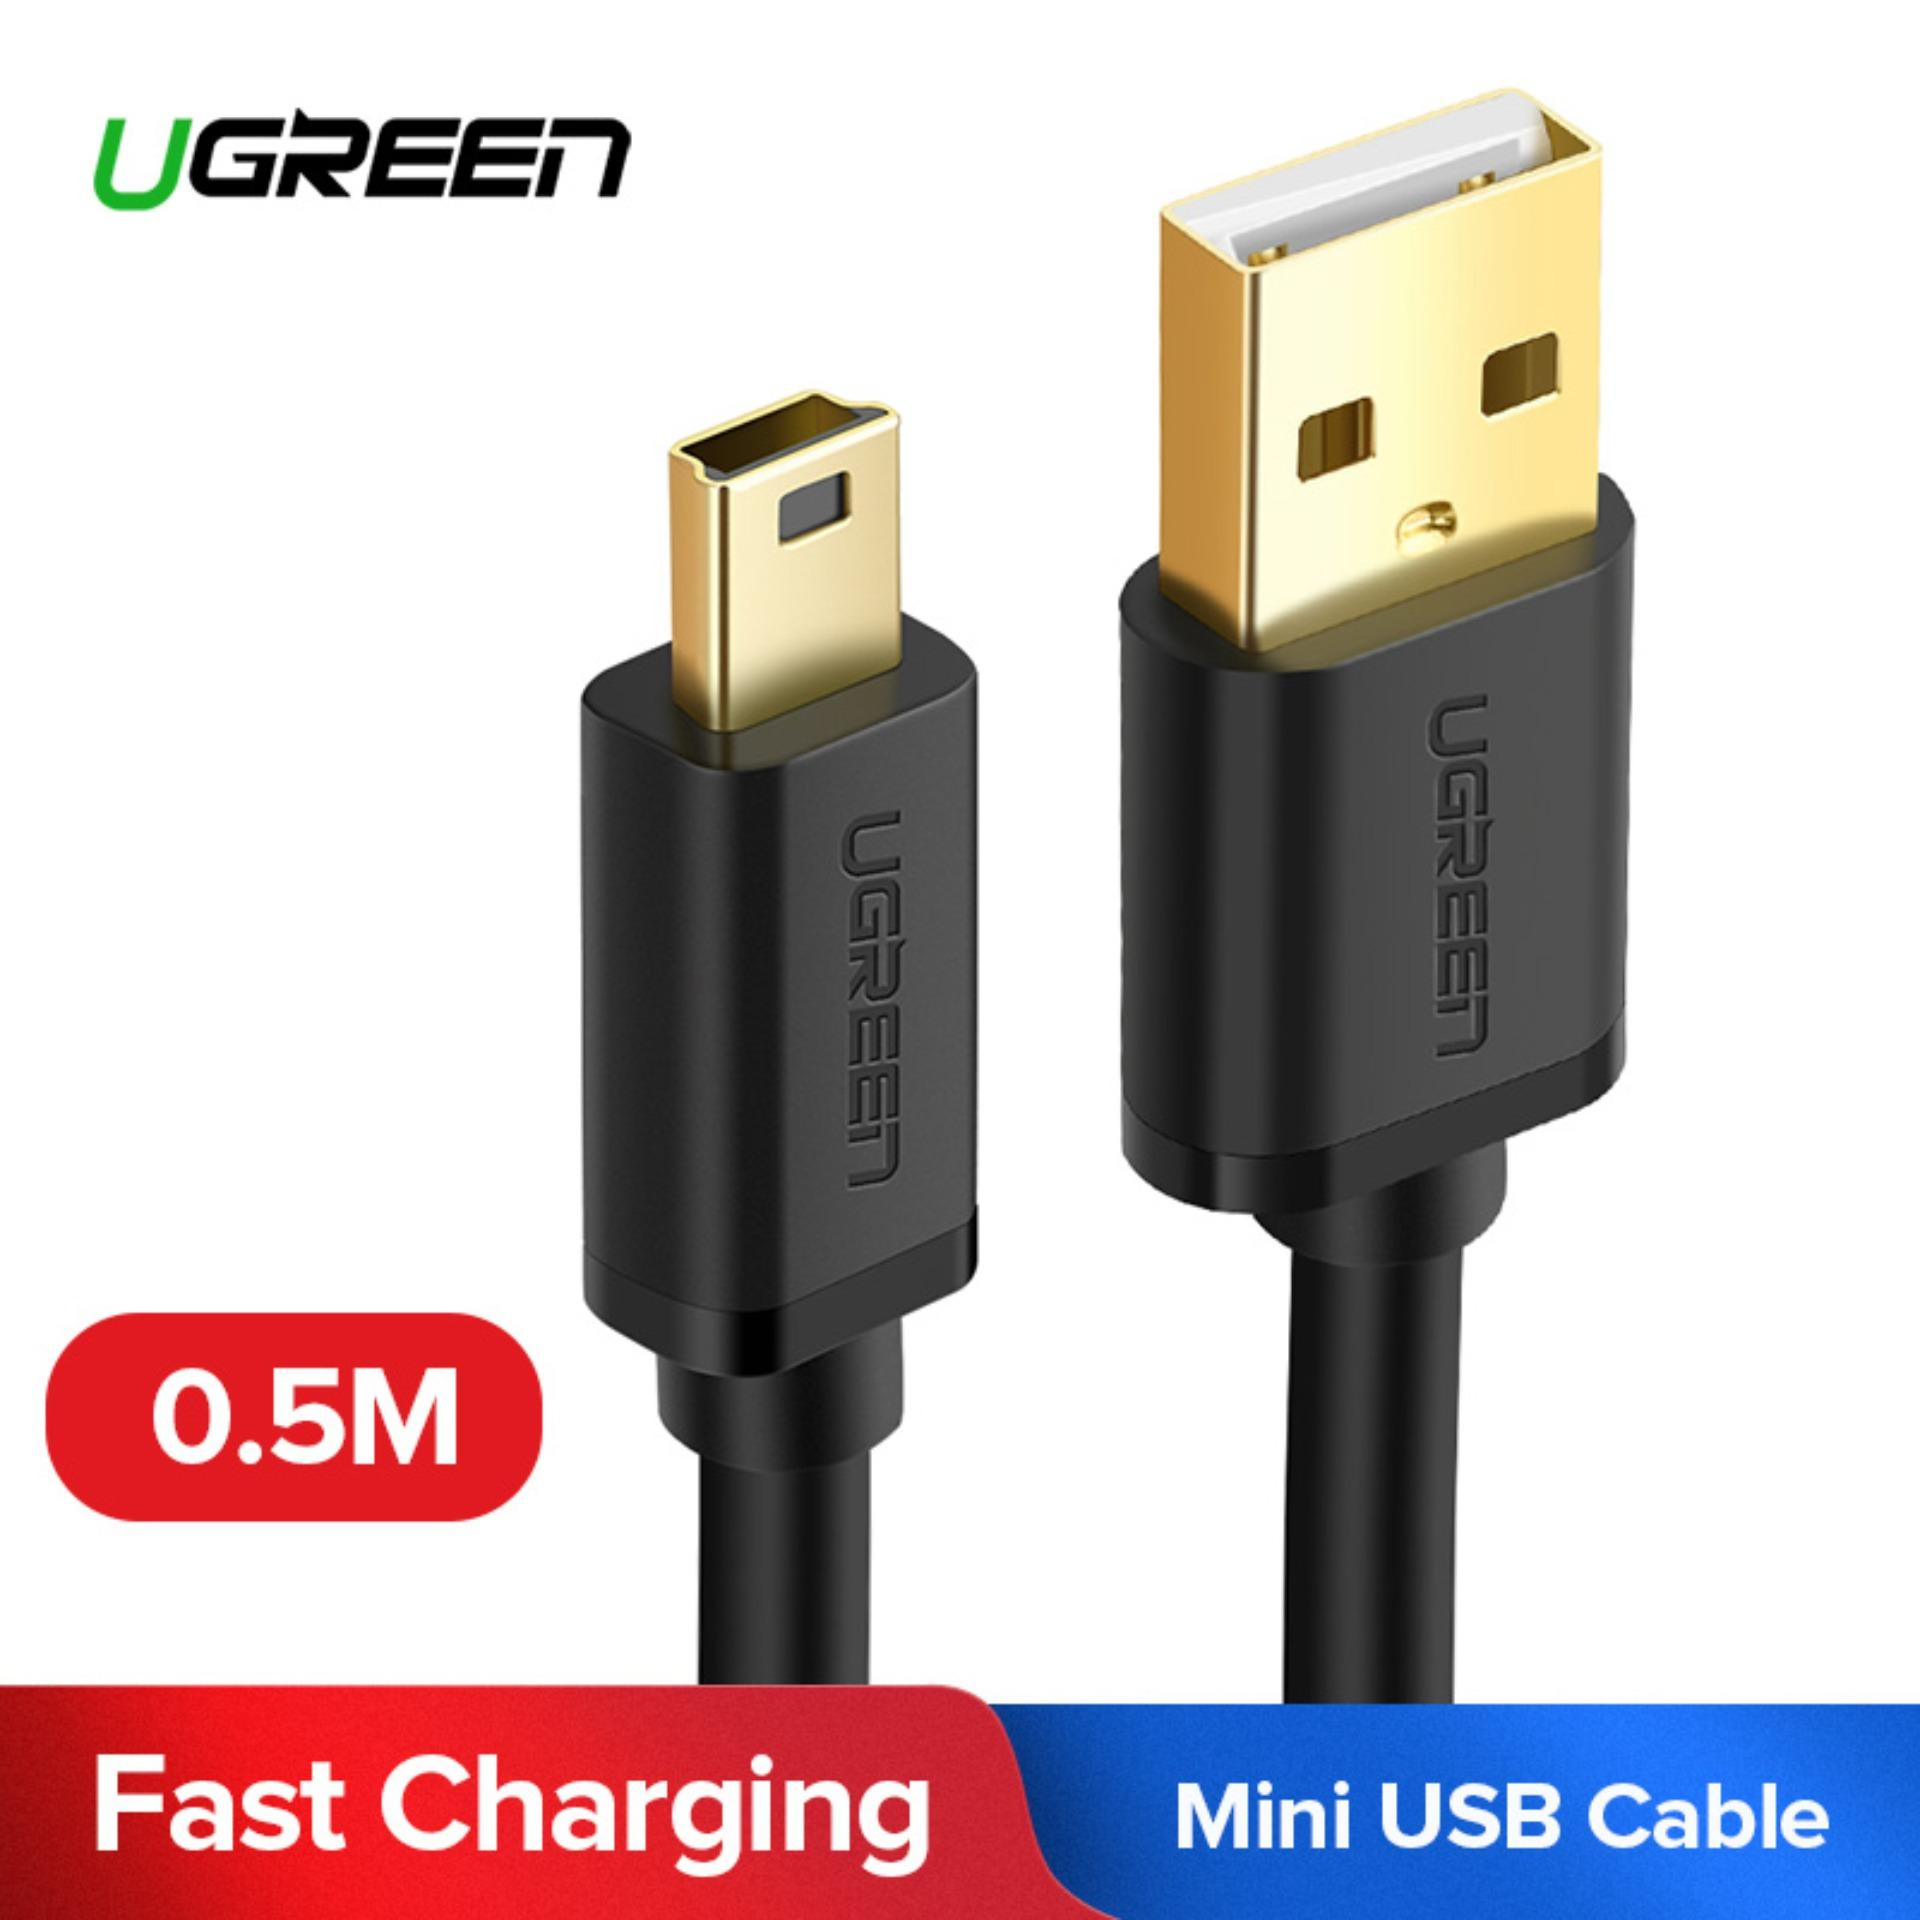 UGREEN USB 2.0 A Male to 5-Pin Mini B Fast Data Charger Cable for MP3 MP4 Players Tablets GPS Digital Camera HDD (0.5m) - Intl